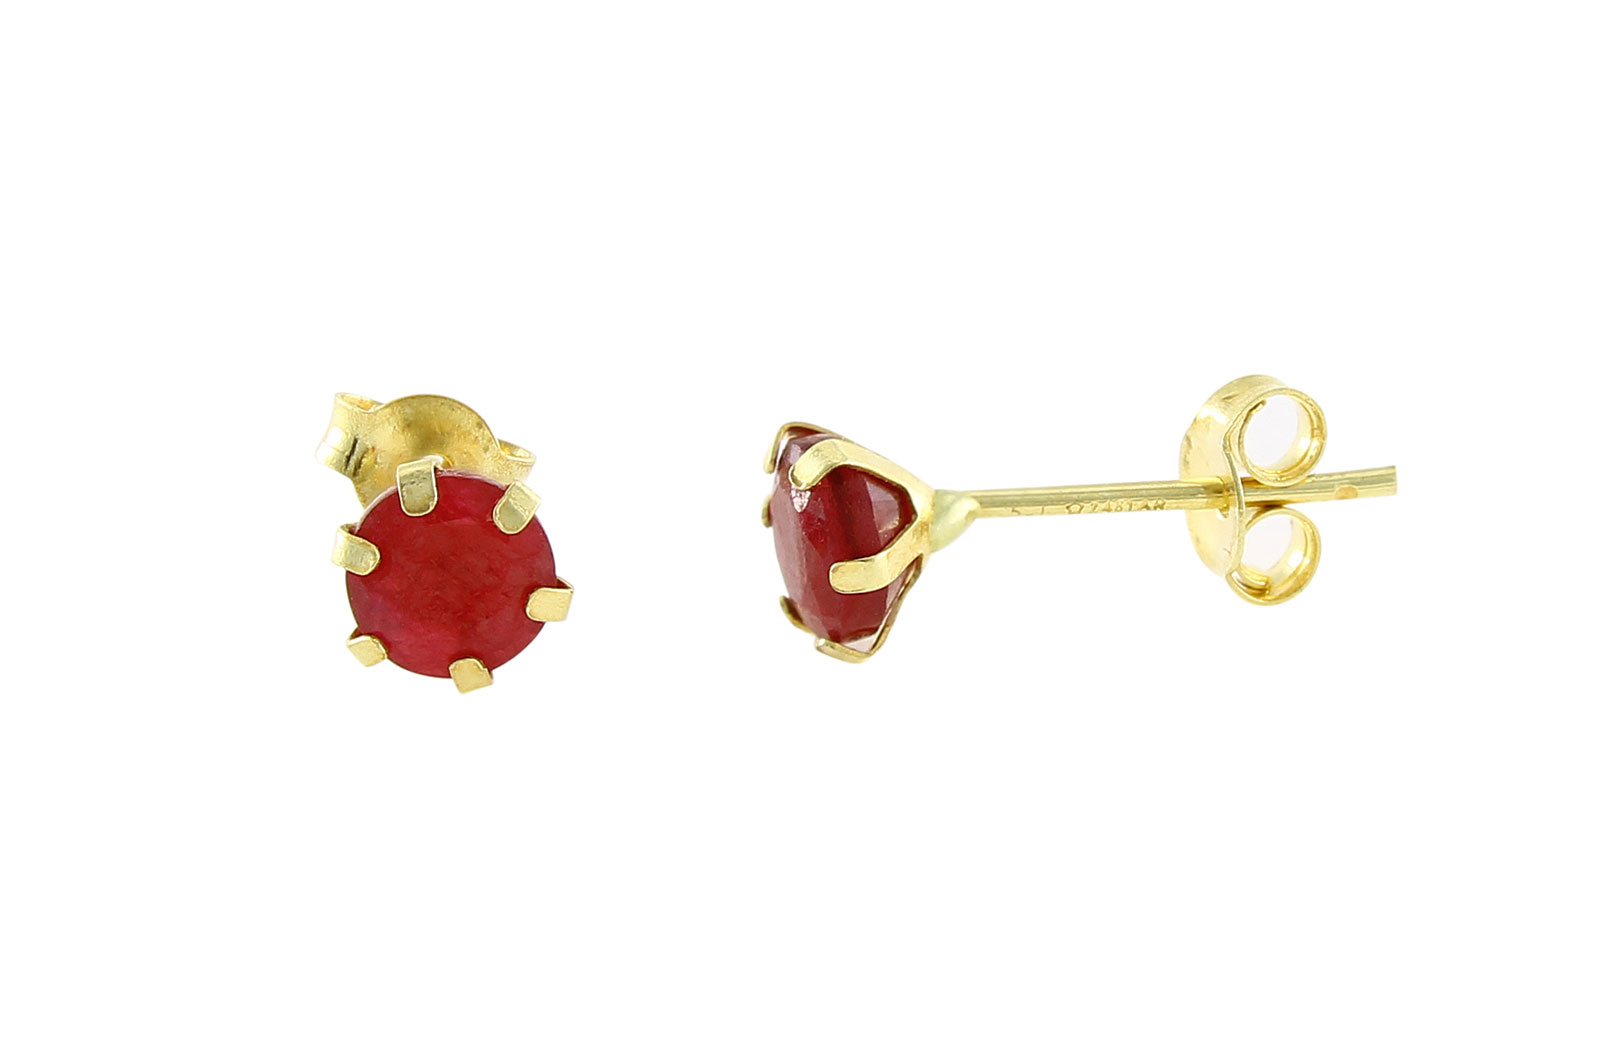 Vera Perla 18K Solid Yellow Gold and 4mm Genuine Rubies Earrings